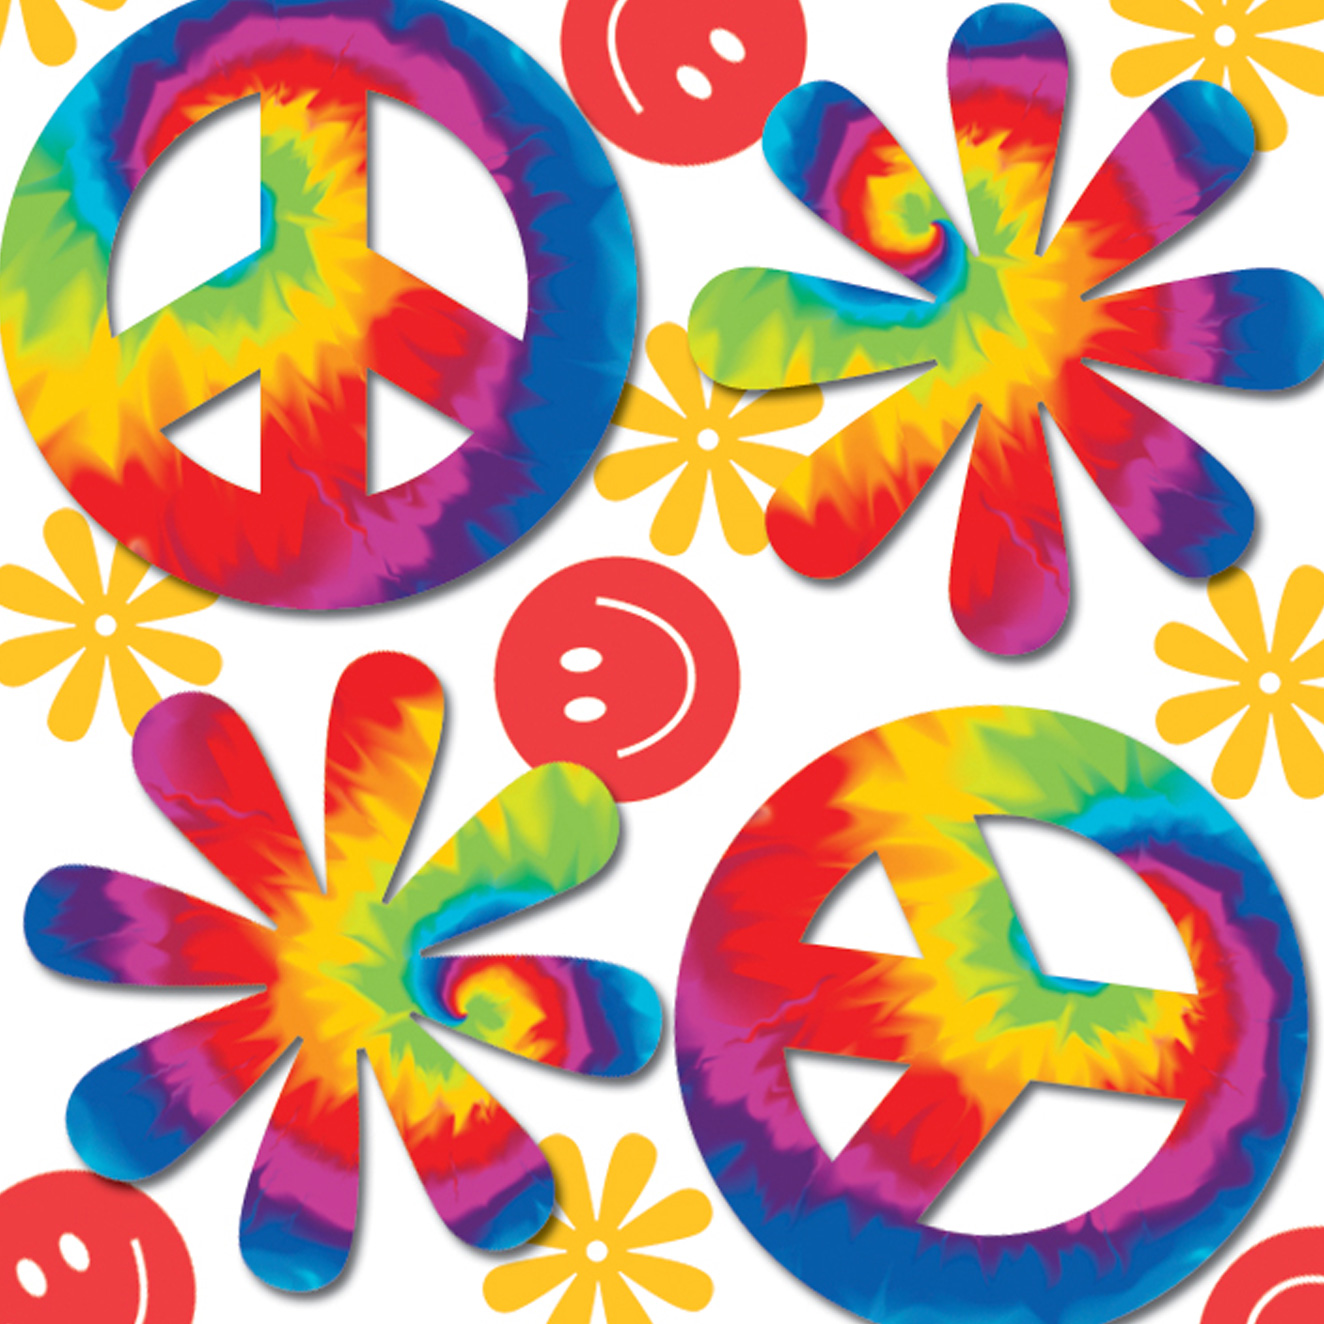 Free Tie Dye Clipart, Download Free Clip Art, Free Clip Art.